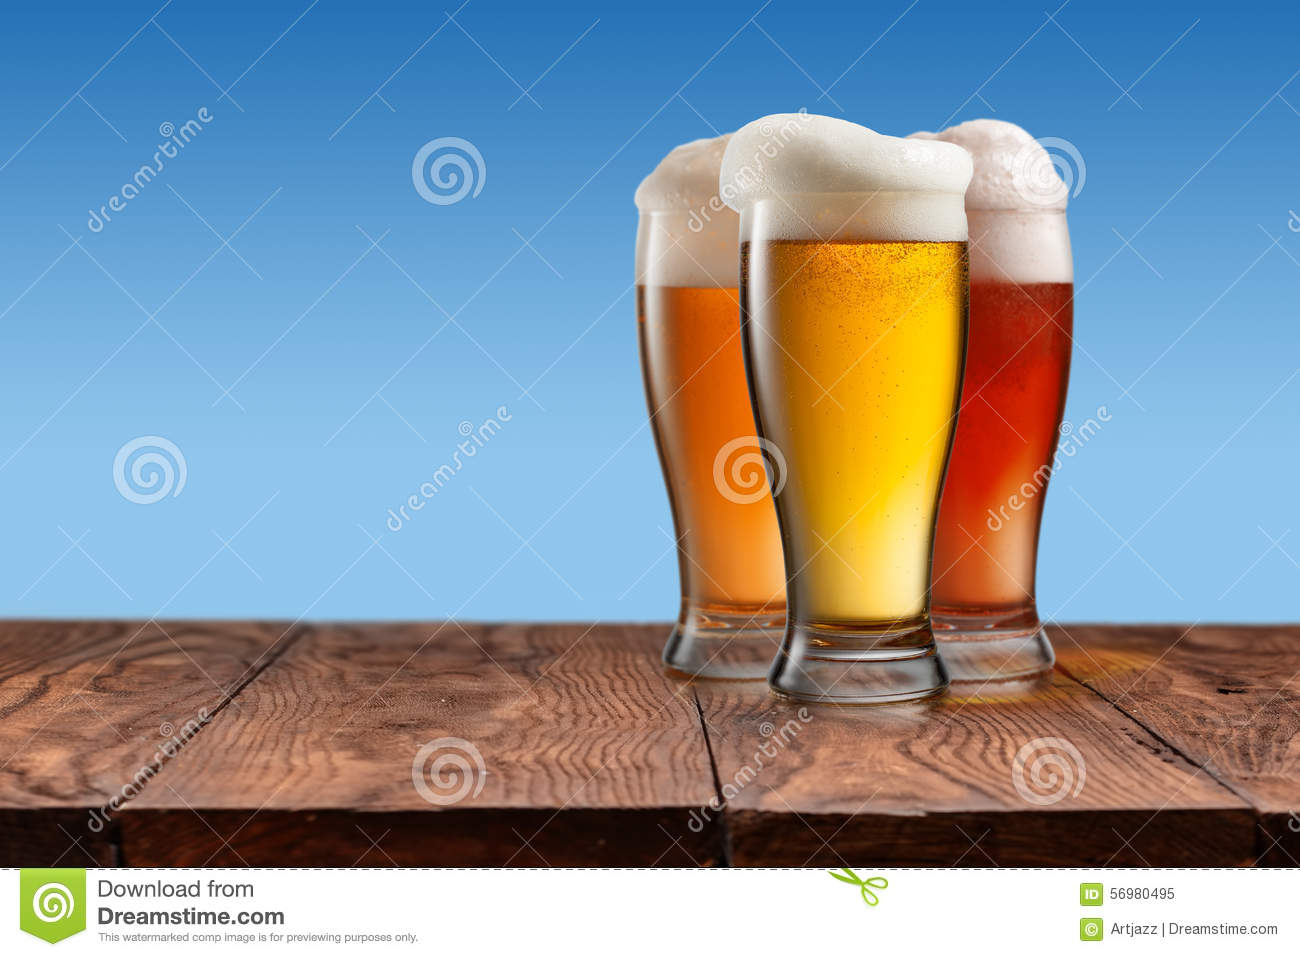 Different beer in glasses on wooden table and blue